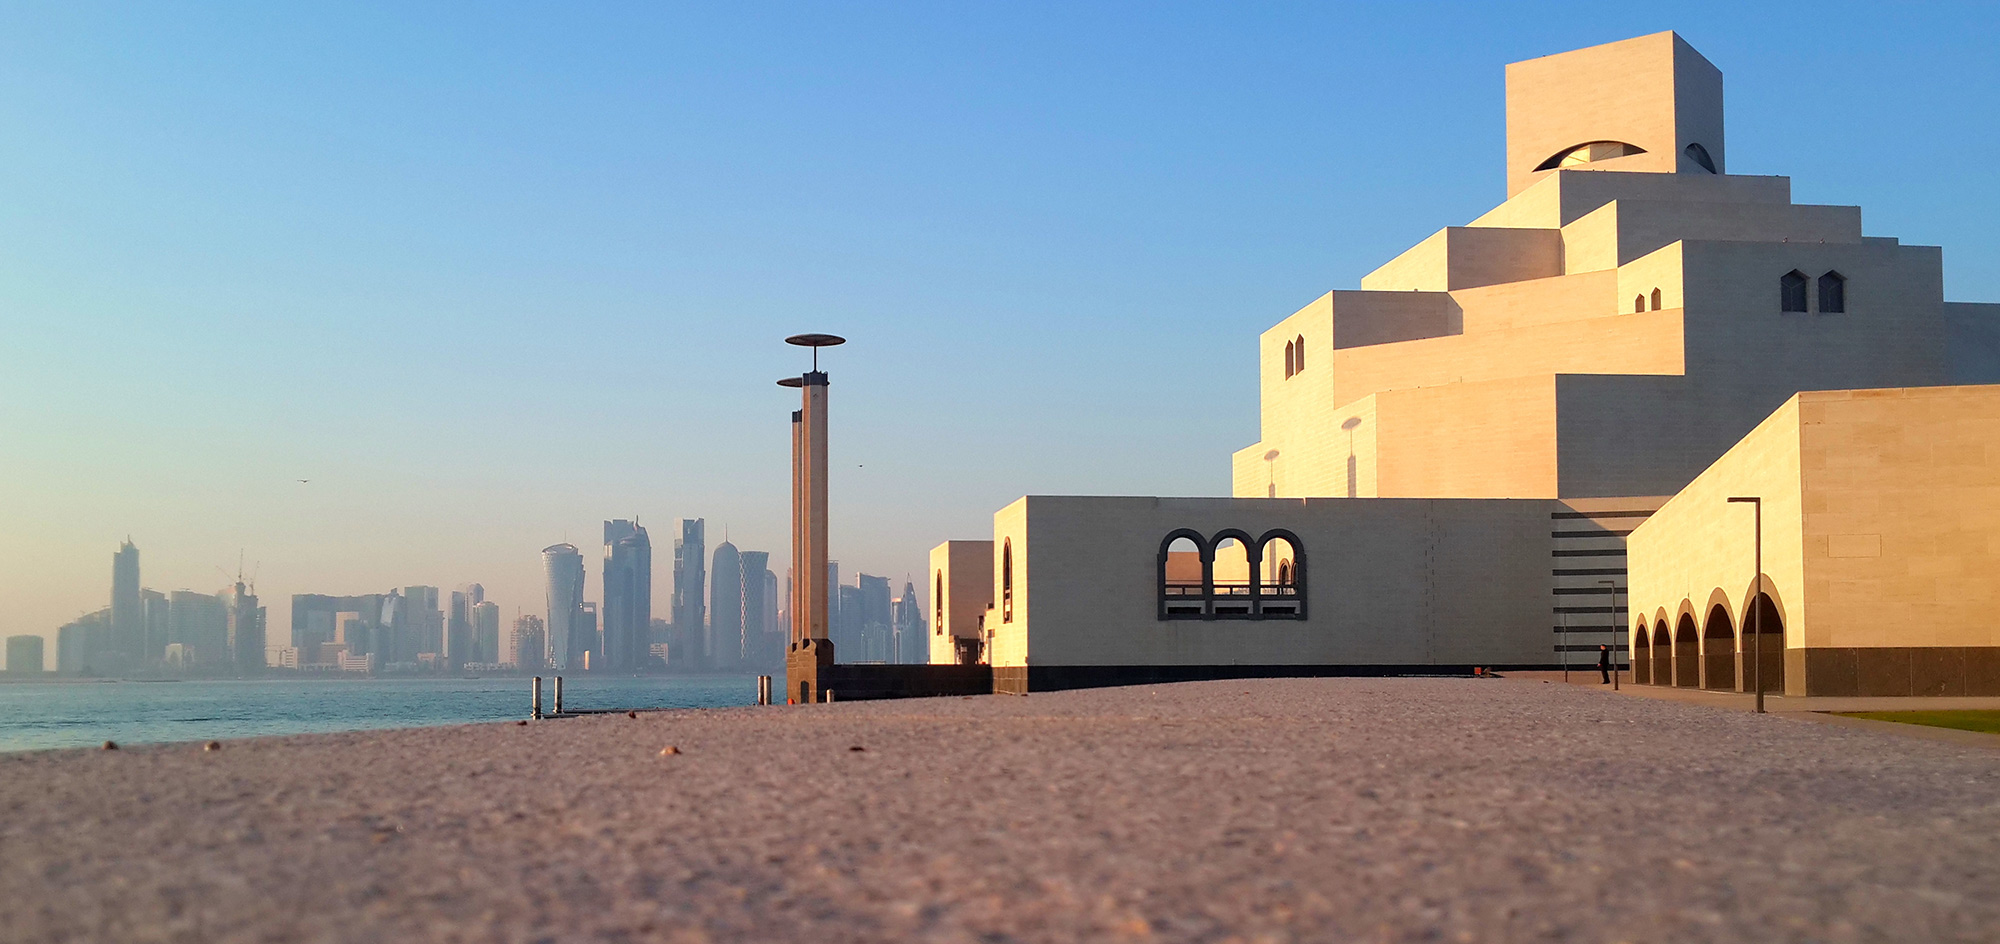 A popular venue, the Museum of Islamic Art in Doha was designed by I.M. Pei.